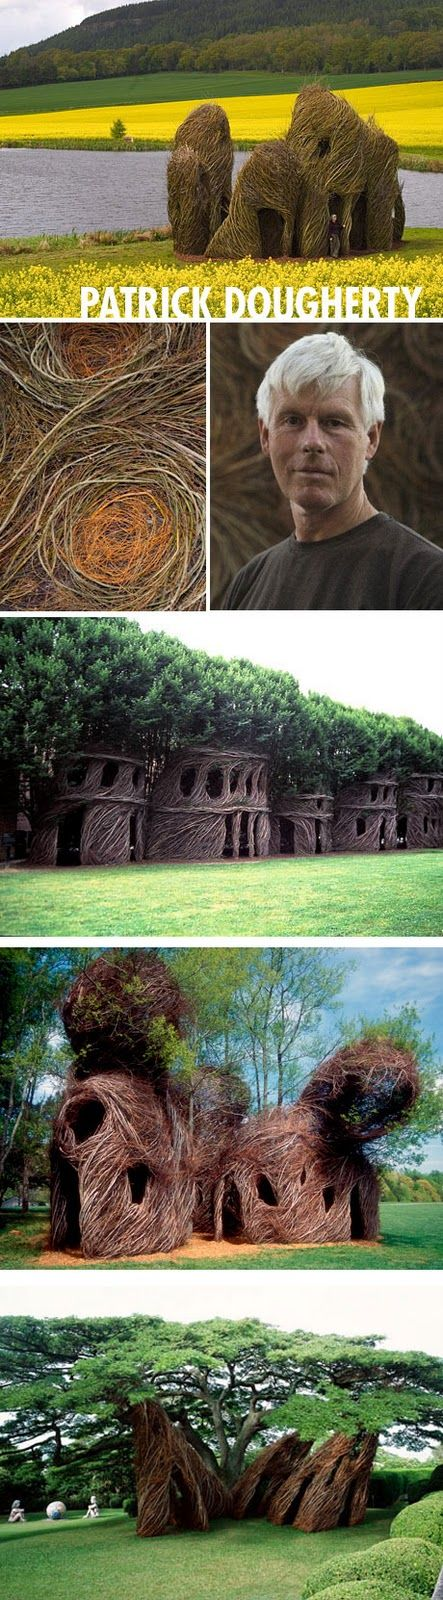 Artist Patrick Dougherty has built over 200 of these installations all over the world!